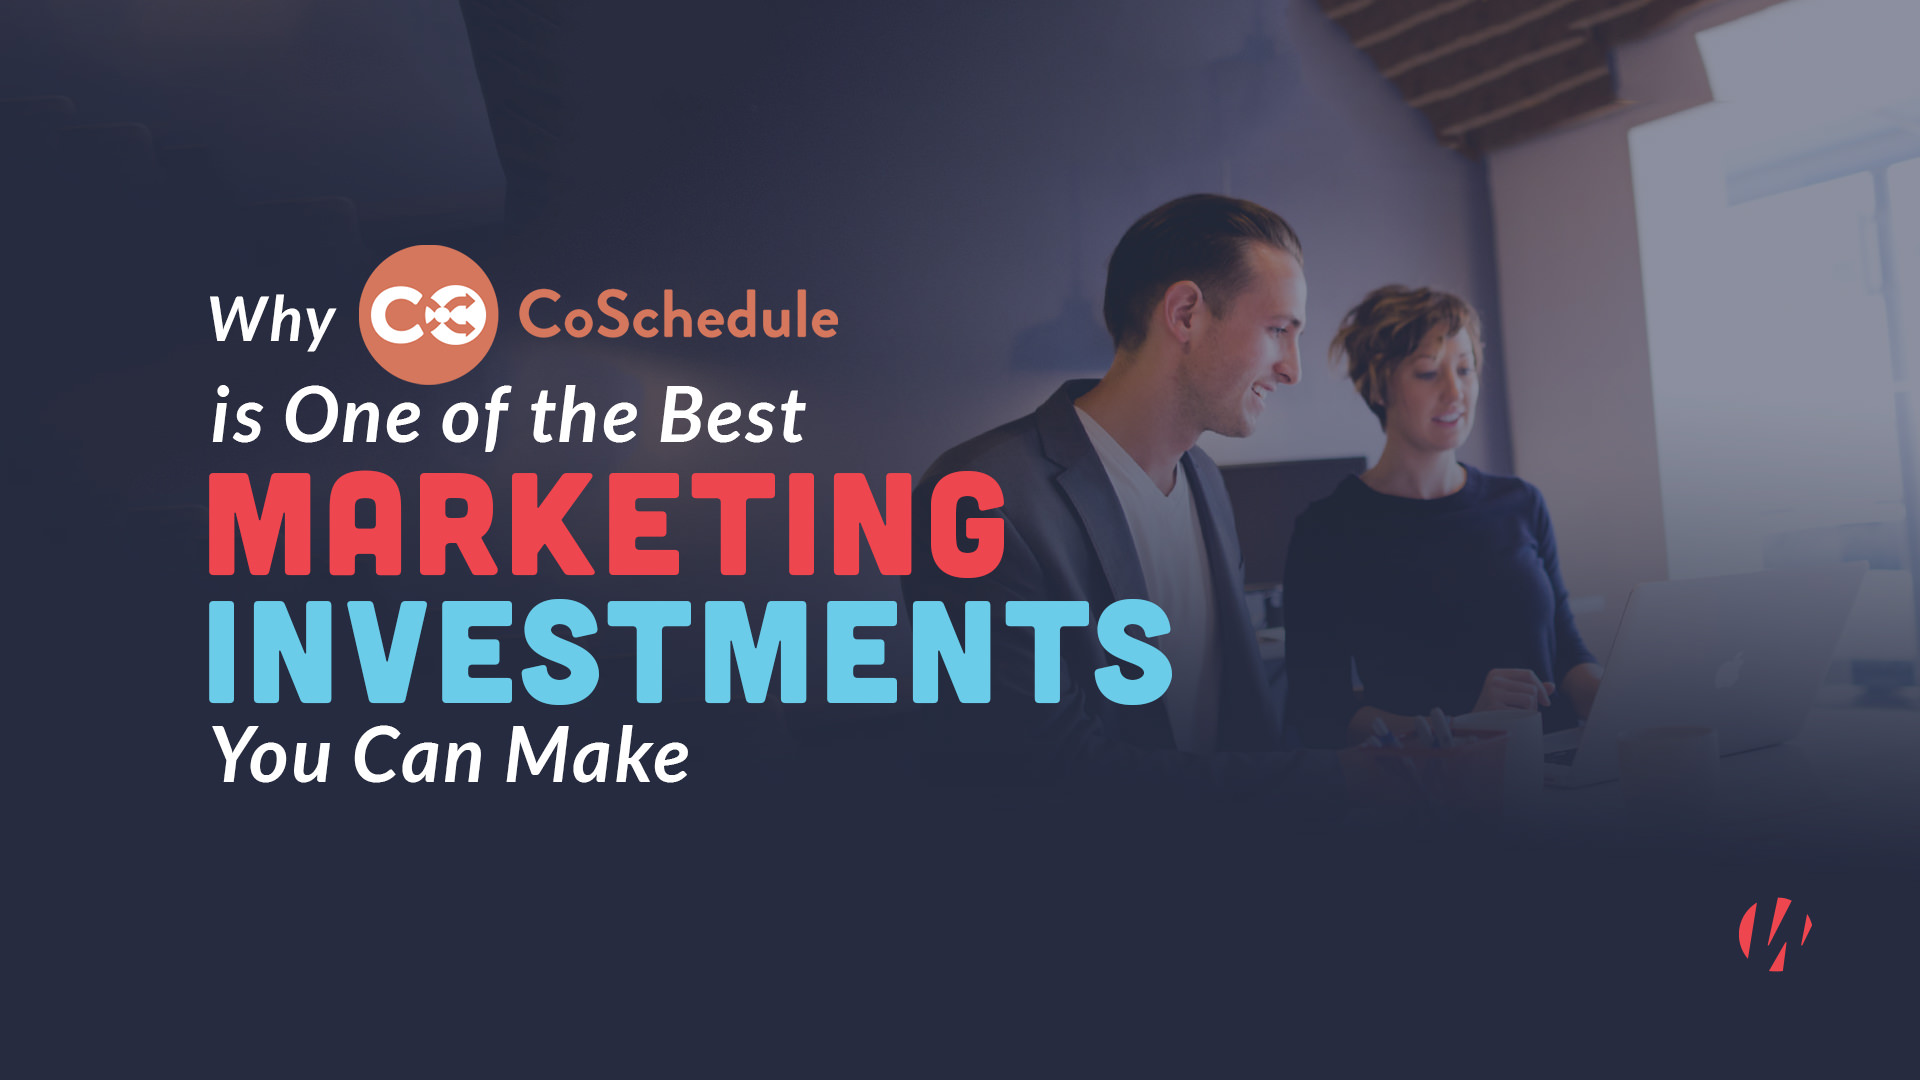 Why CoSchedule is One of the Best Marketing Investments You Can Make